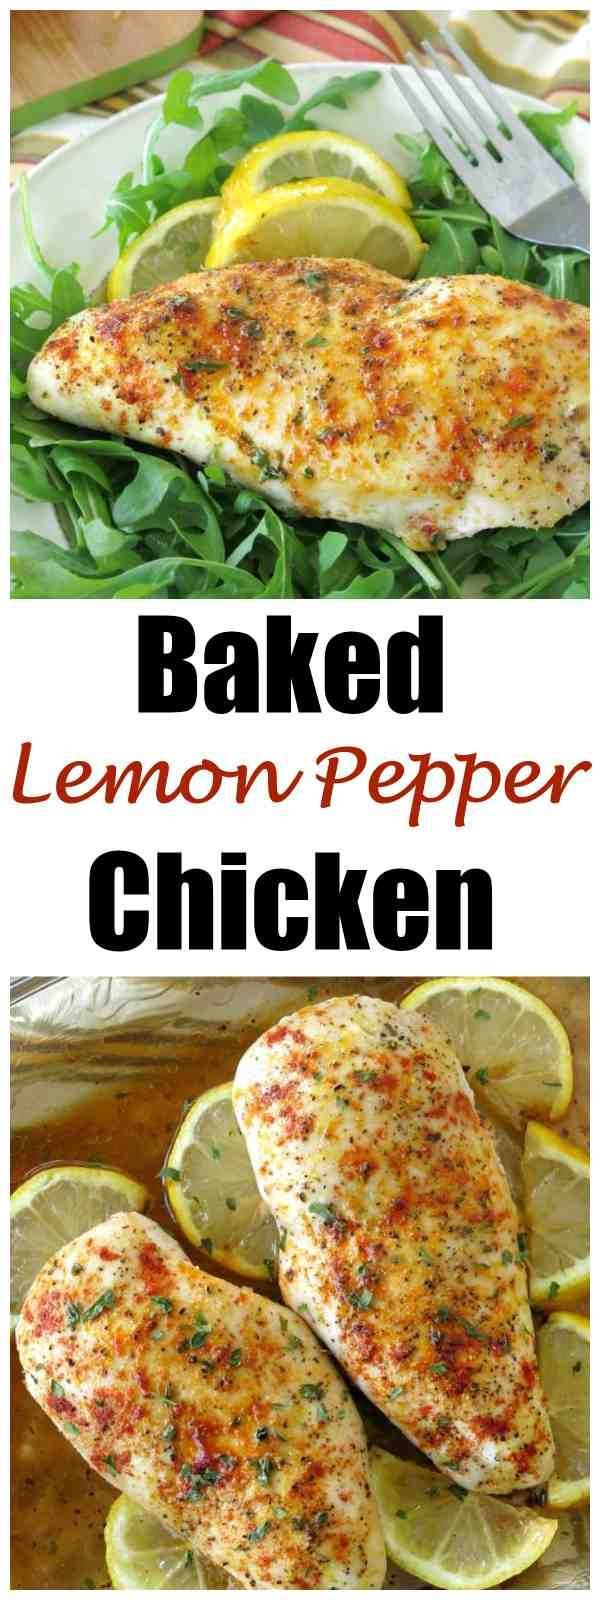 Baked Lemon Pepper Chicken Breast Recipe is healthy, low-carb and the perfect for cooking once, eating twice! #lemonchicken #lowcarbrecipes #cleanRecipes #ChickenRecipes #dinnerideas